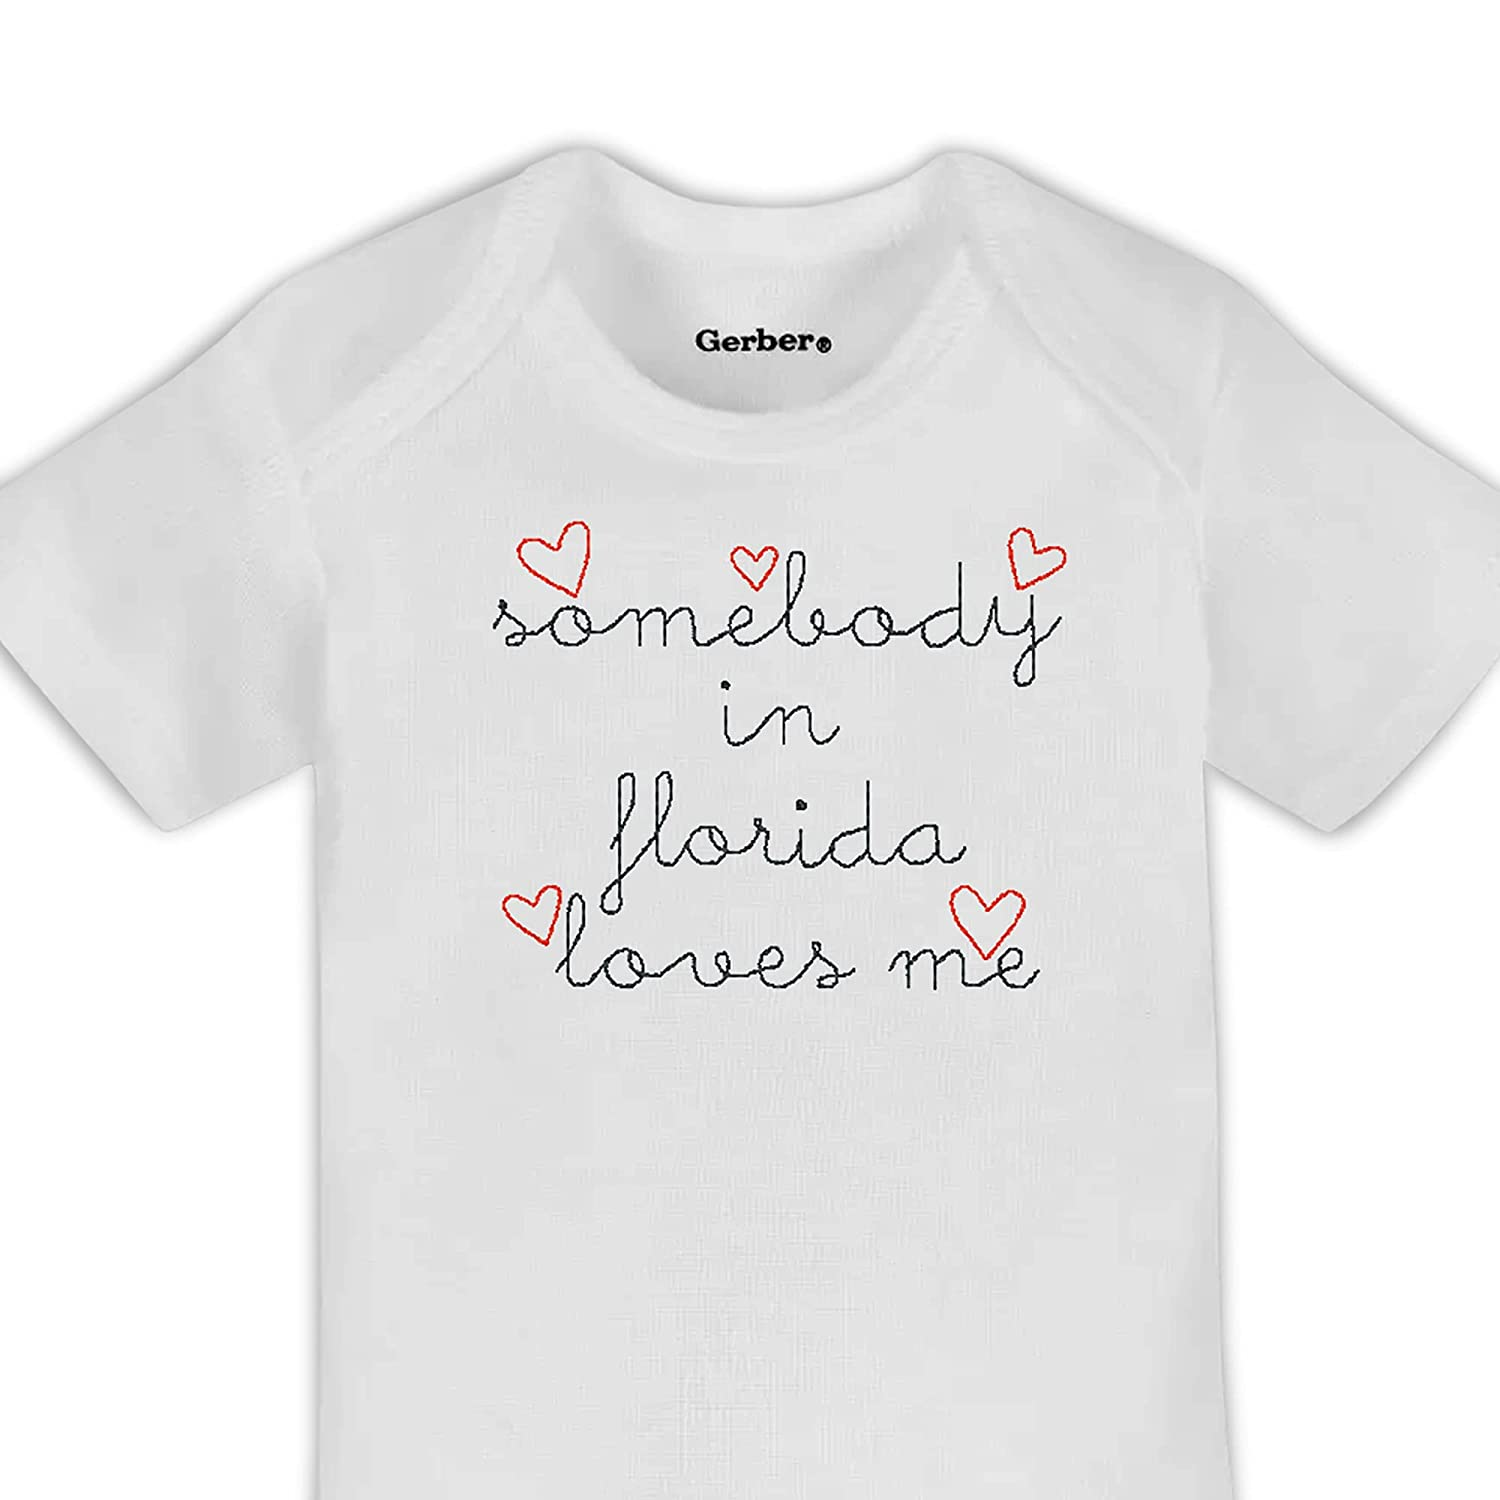 Somebody In Florida Loves Me Shower Phoenix Mall Onesie® New arrival Embroidered Baby